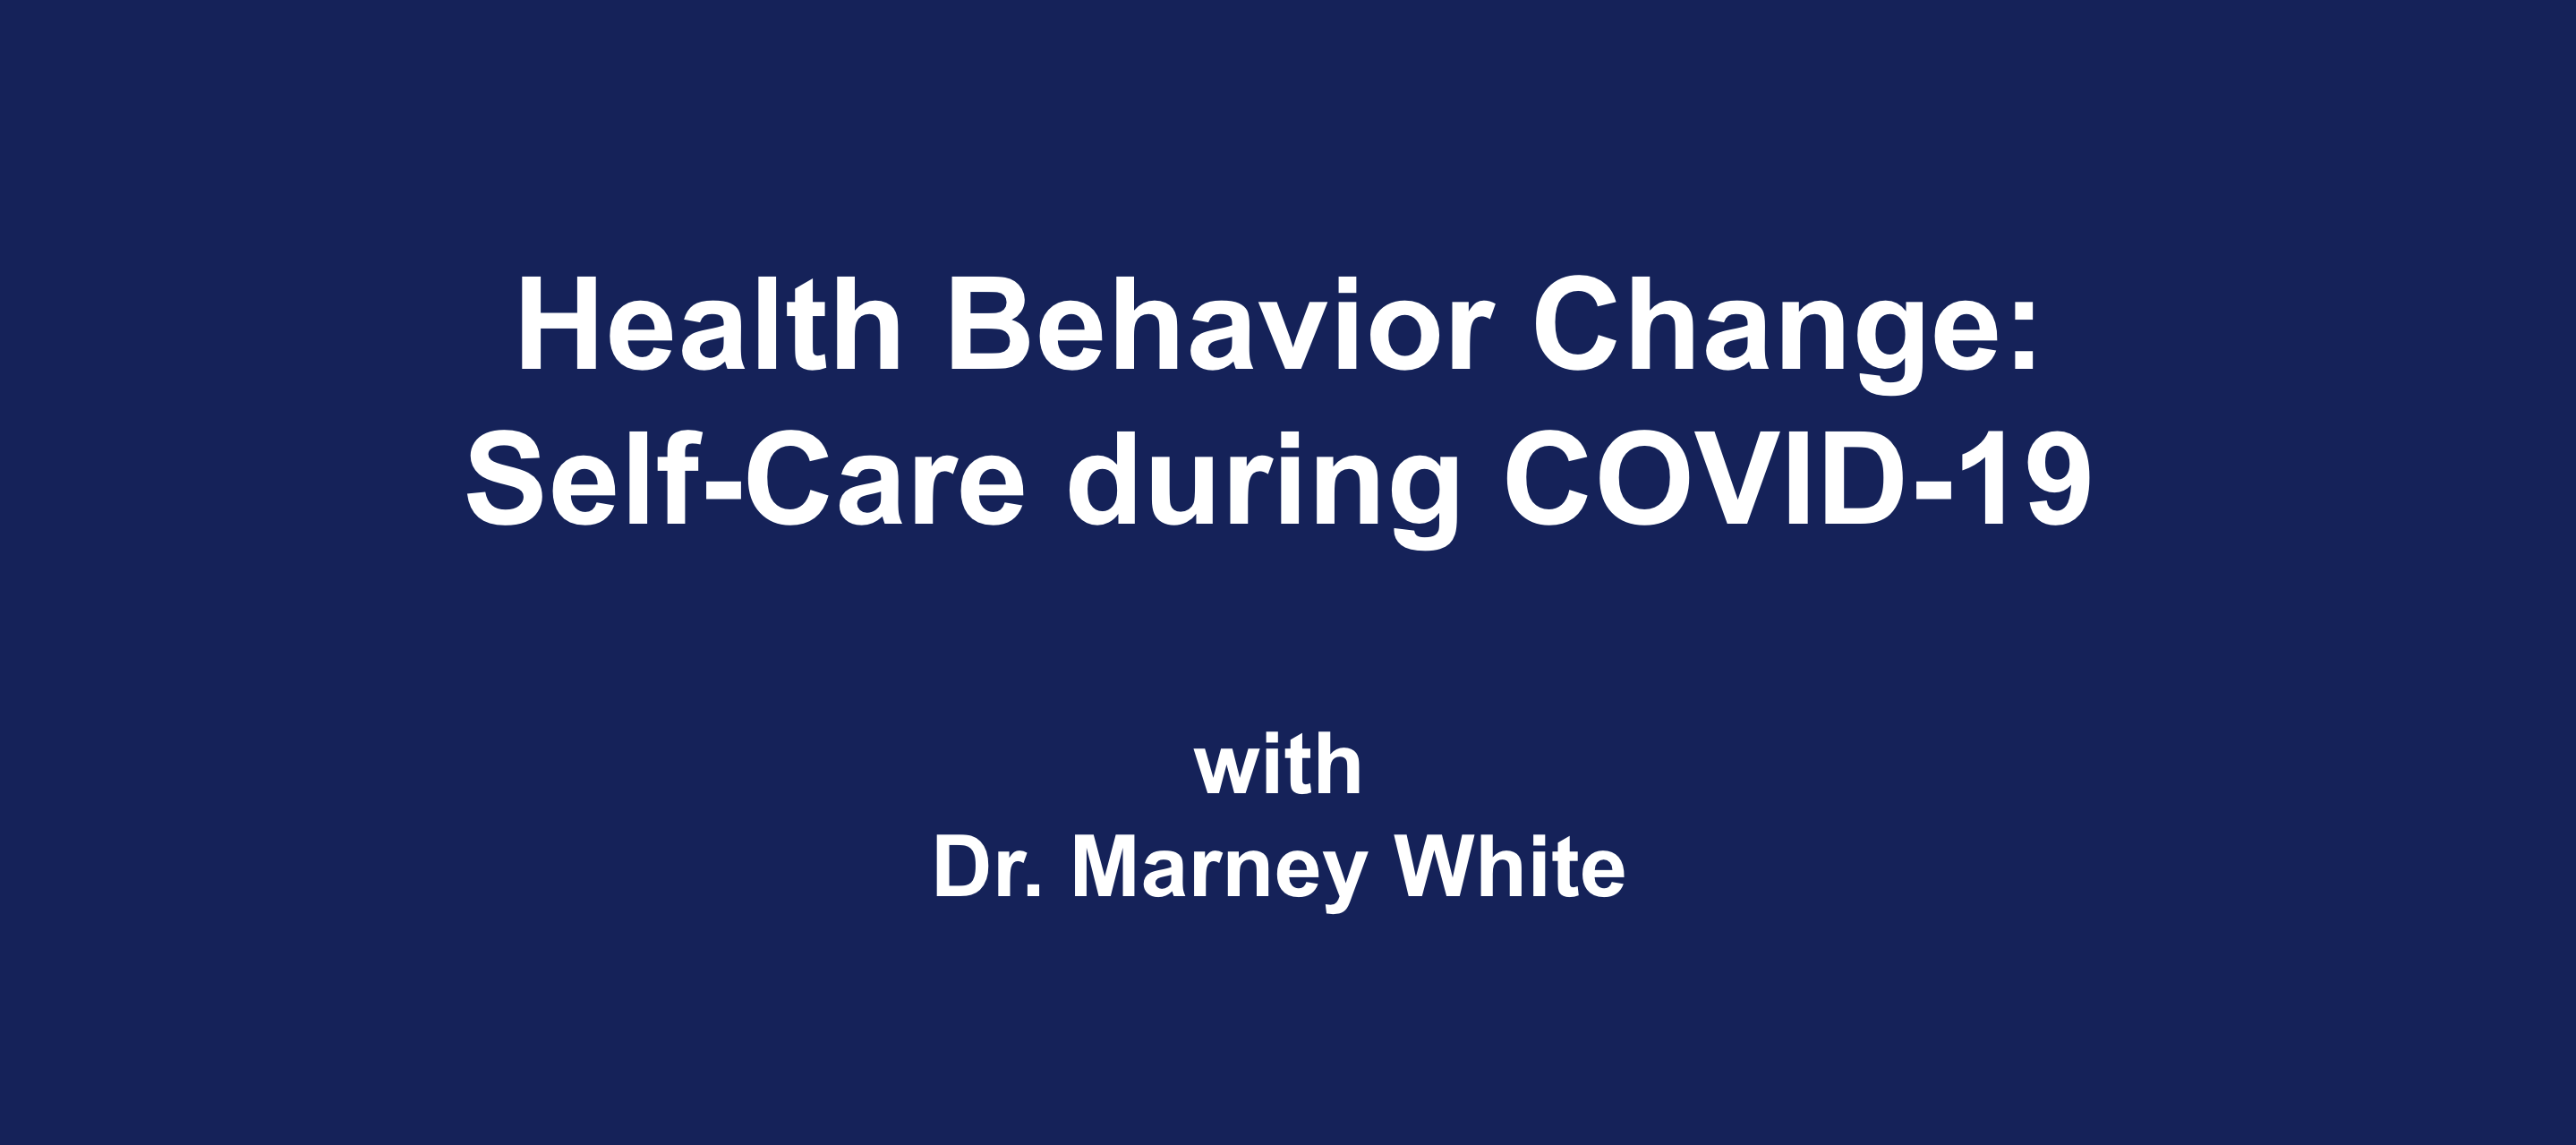 Health Behavior Change: Self-Care During COVID-19